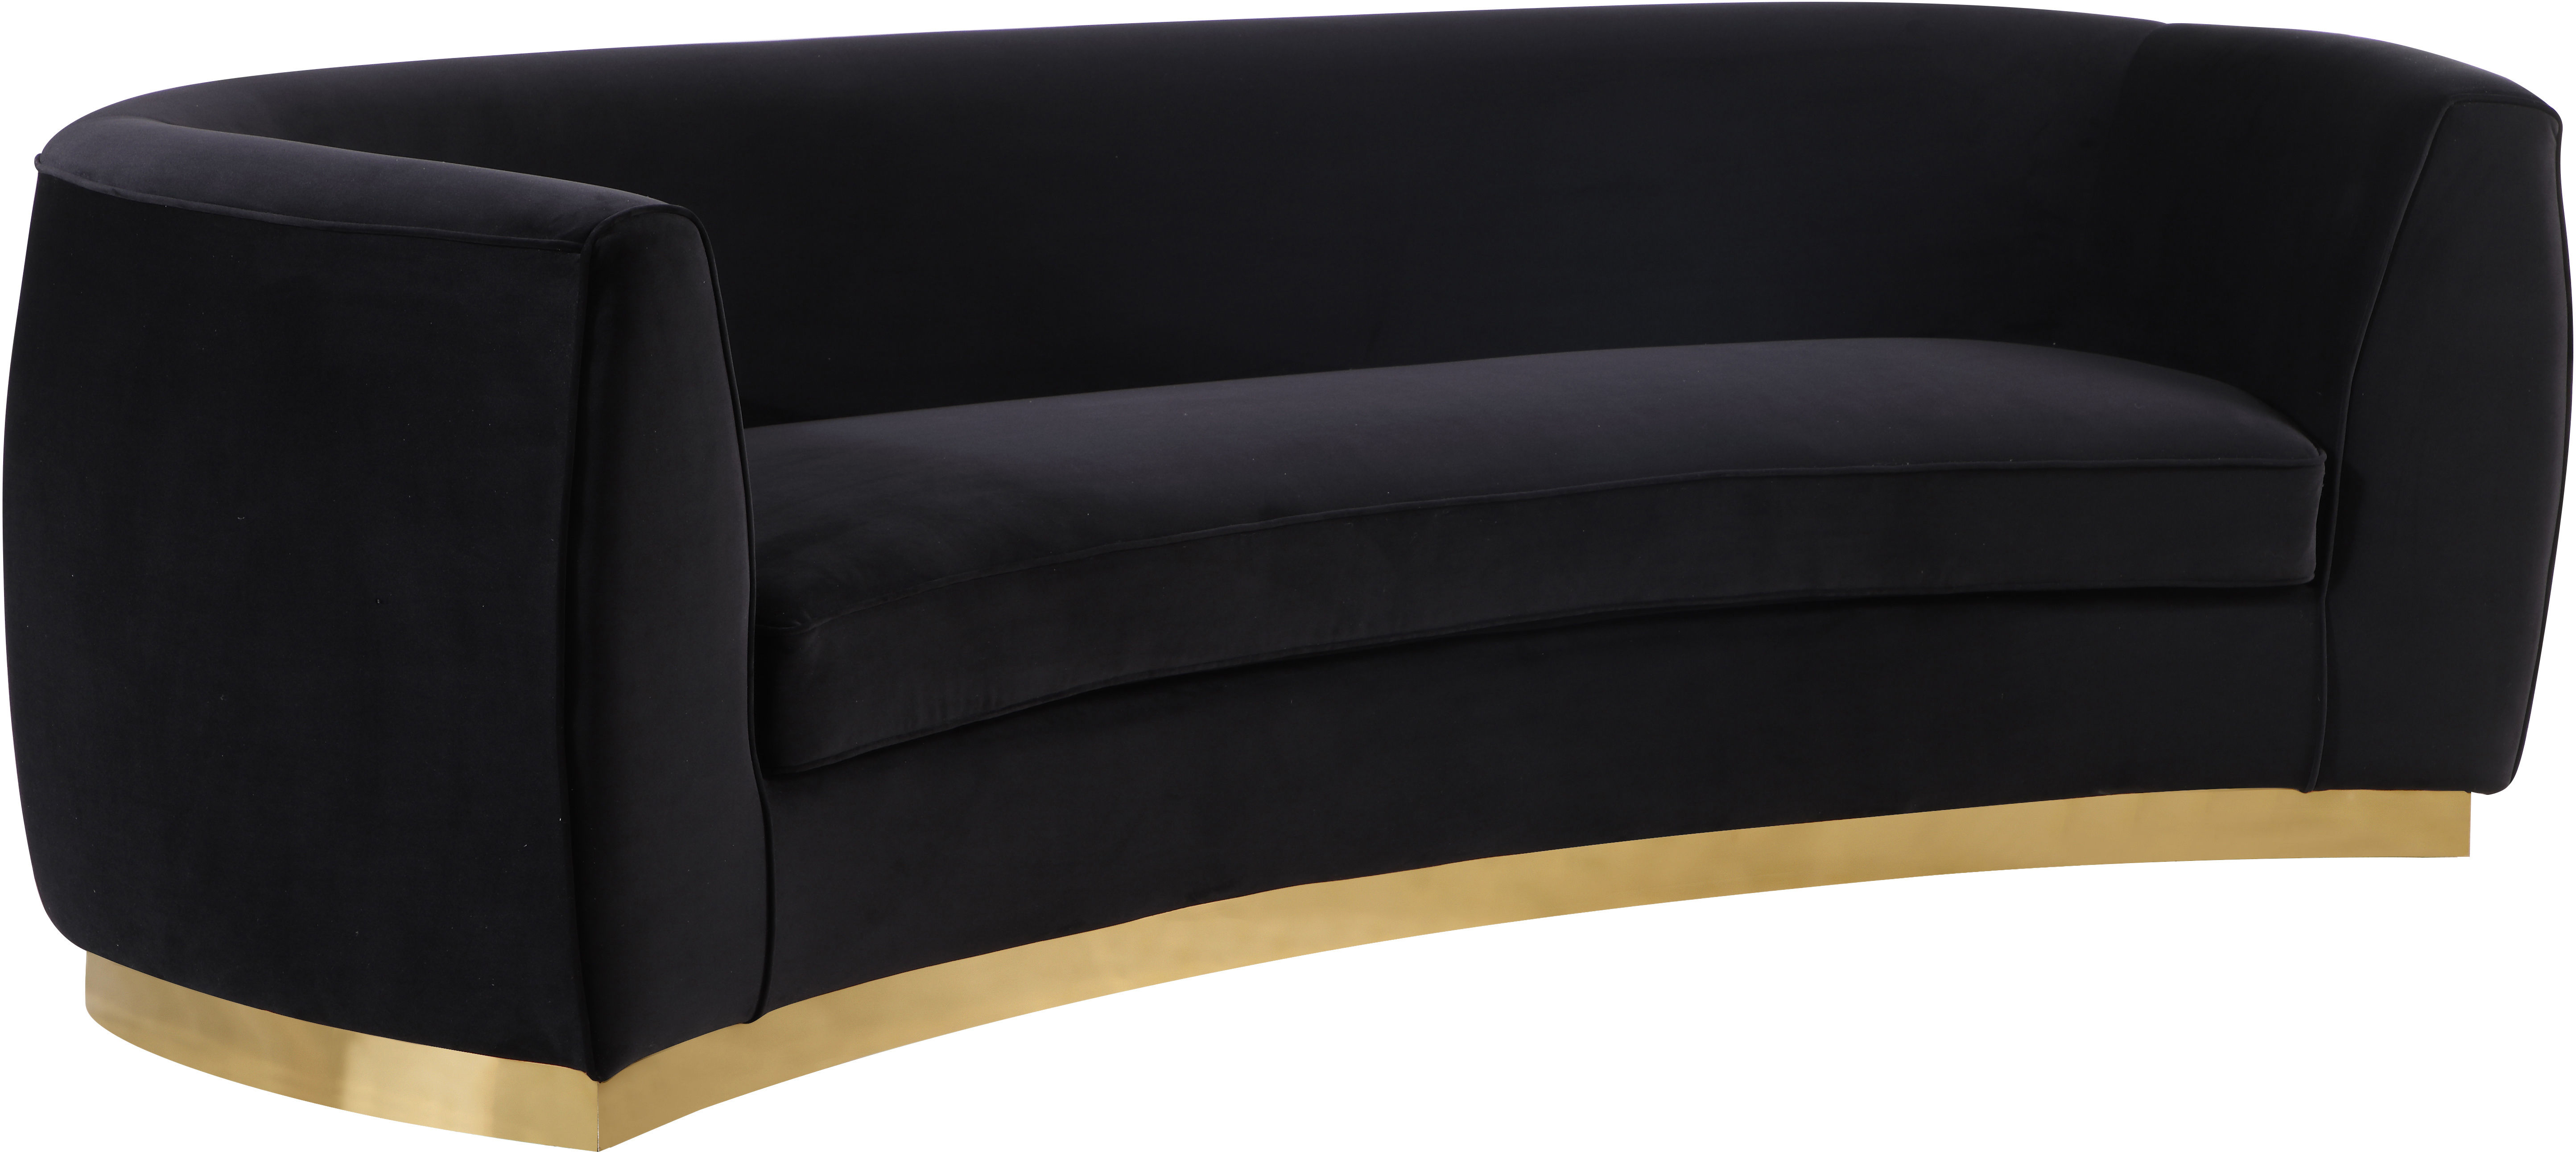 Astounding Meridian Furniture Julian Black Velvet Gold Base Sofa Pabps2019 Chair Design Images Pabps2019Com